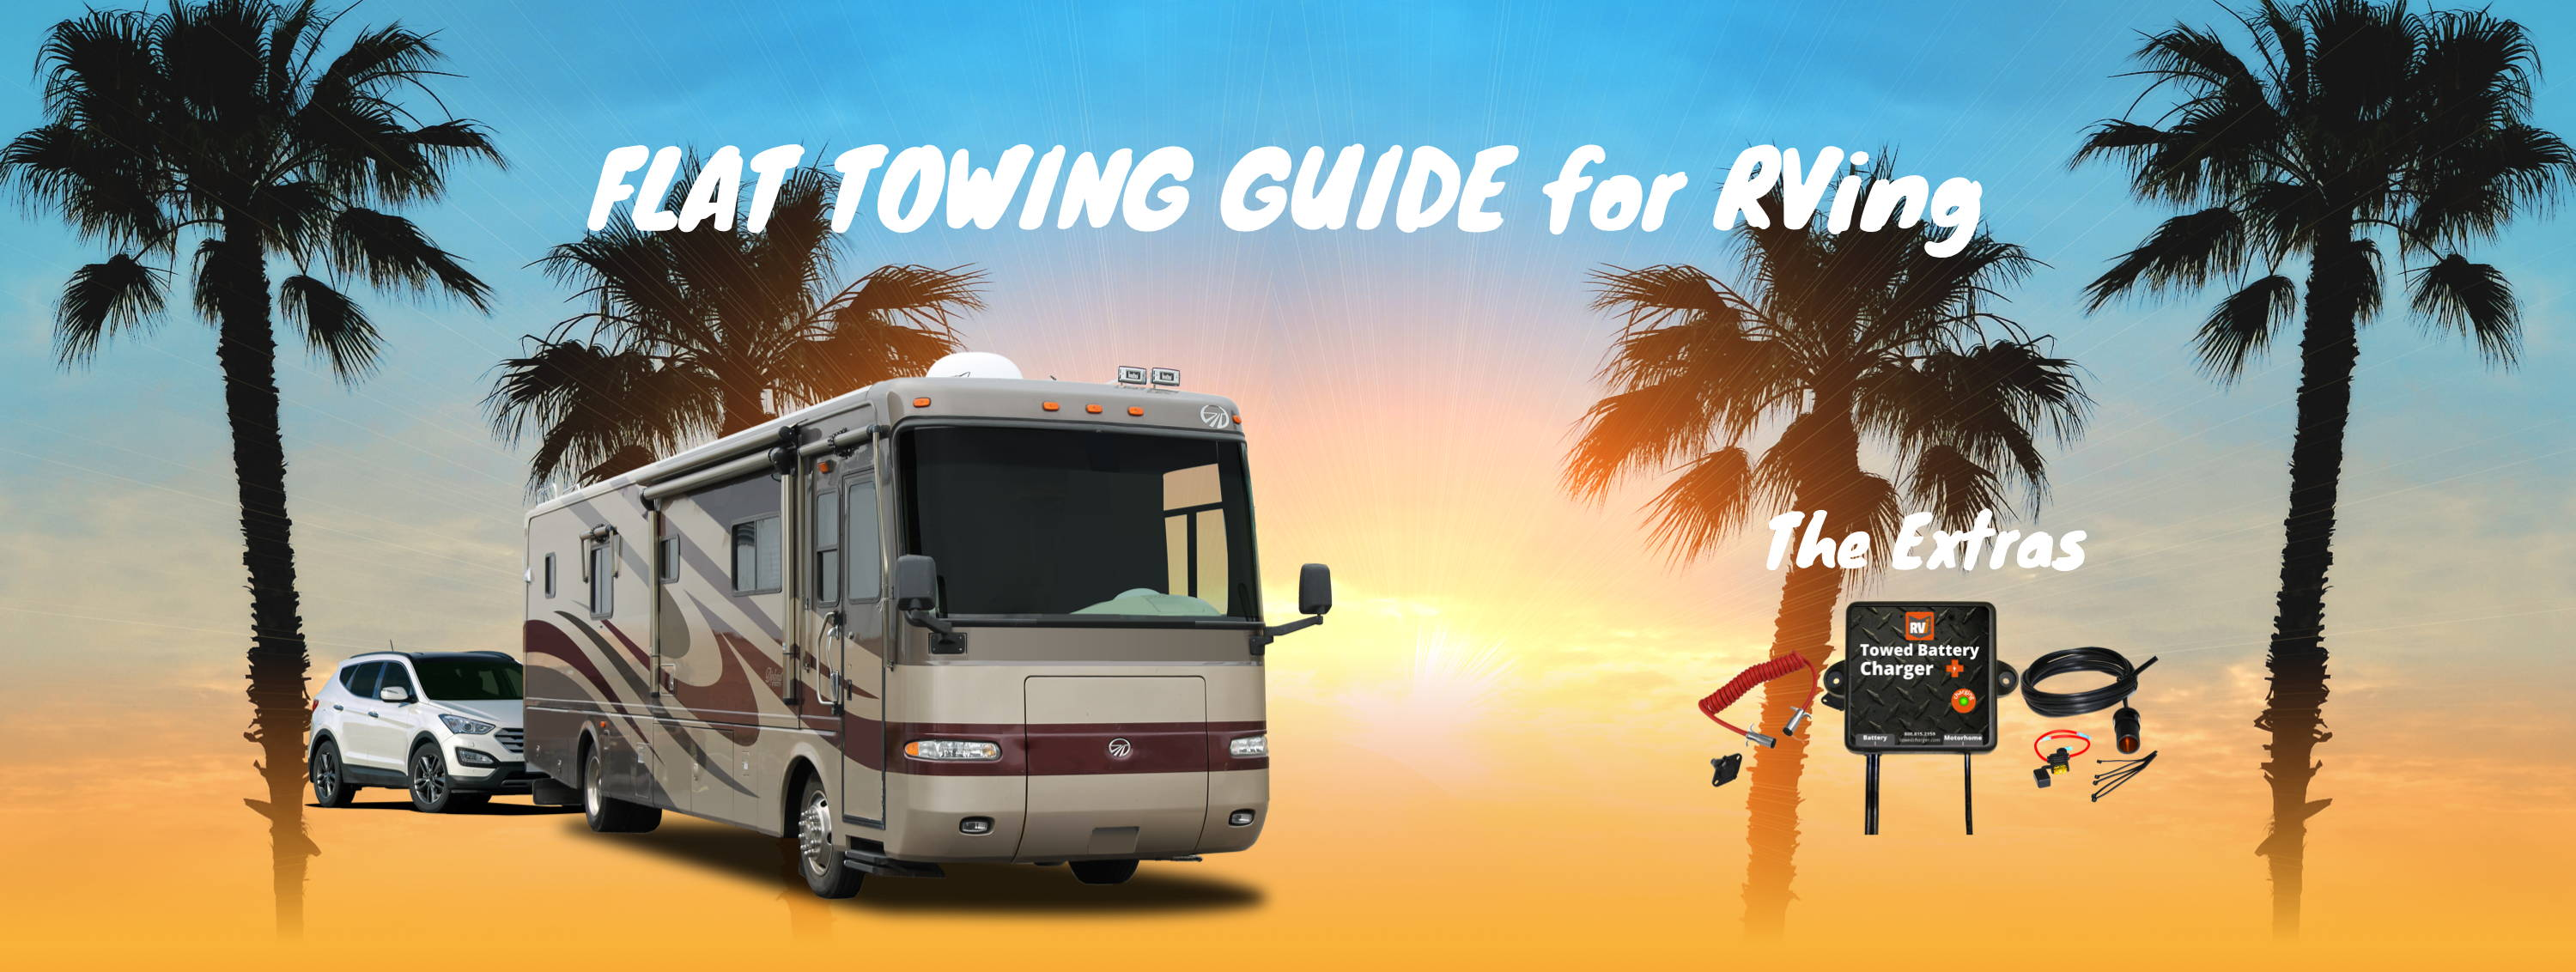 Flat Towing Guide 6 Extras – RVi